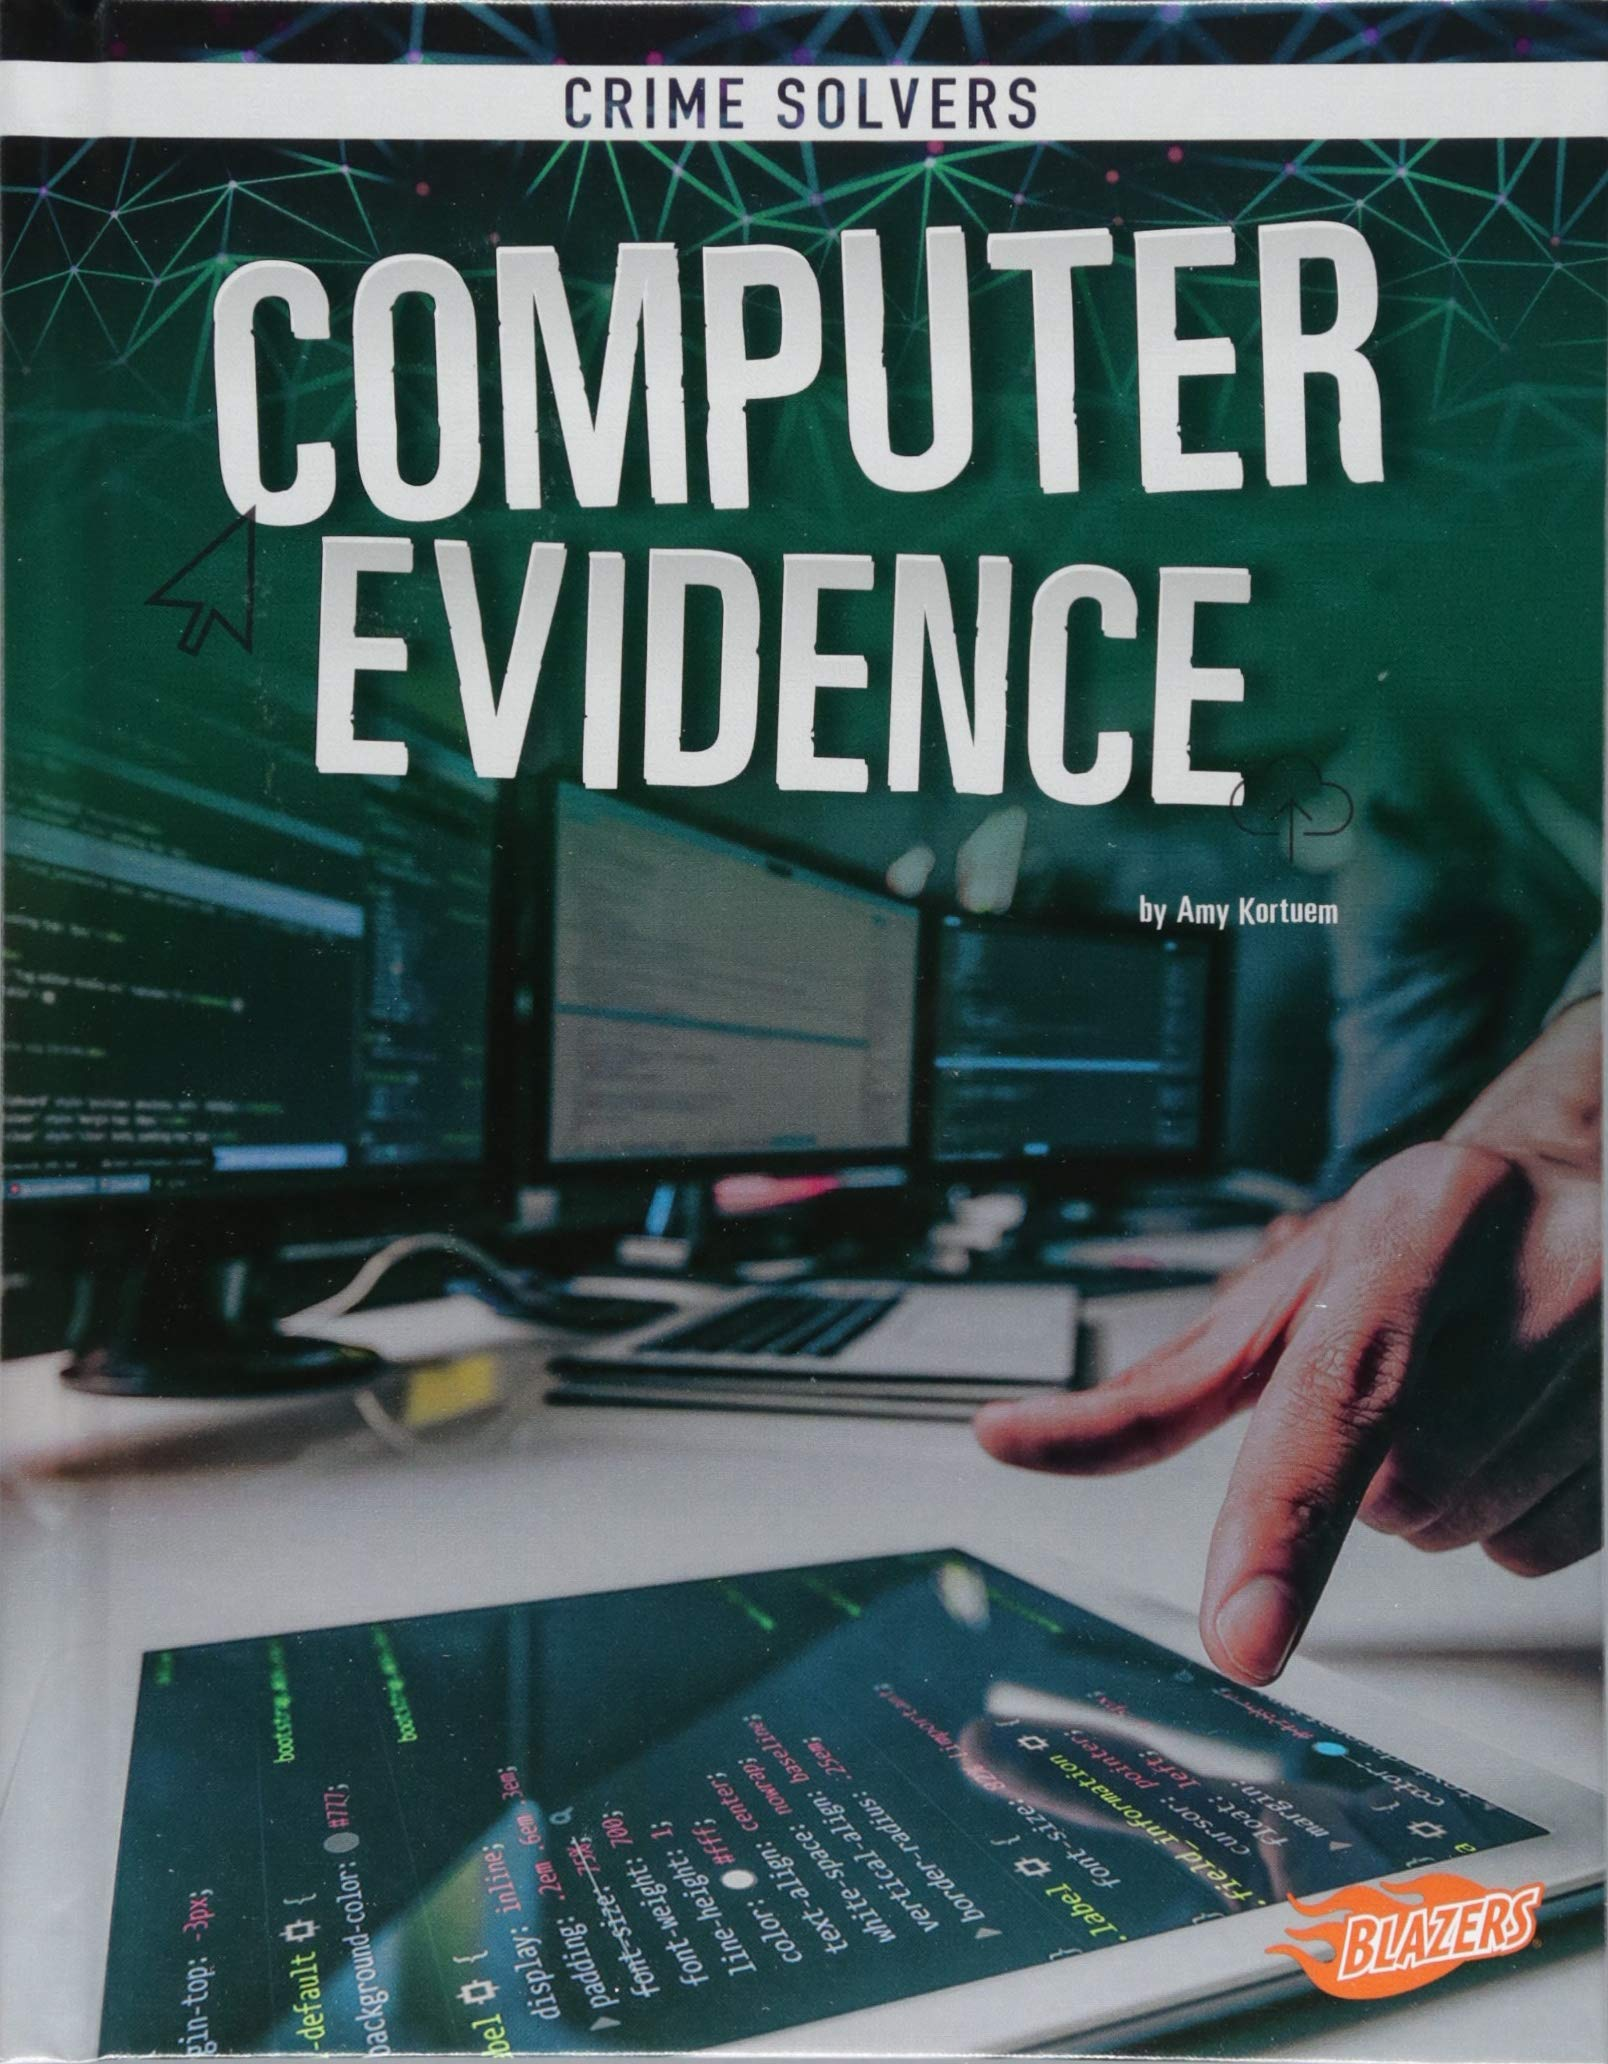 Computer Evidence (Crime Solvers)